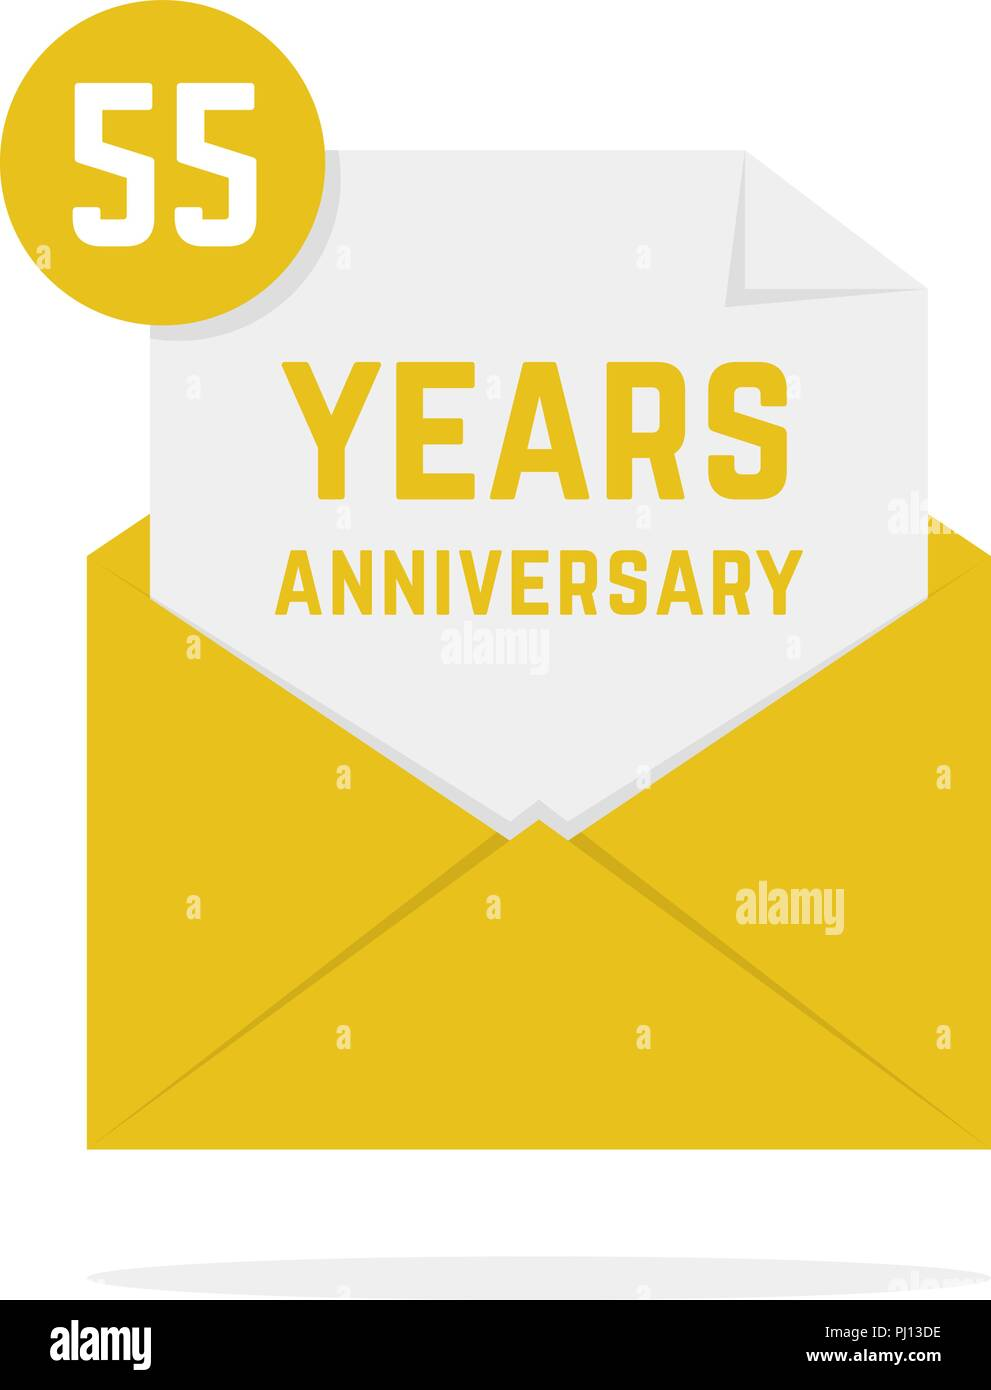 55 Years Anniversary Missive In Golden Envelope